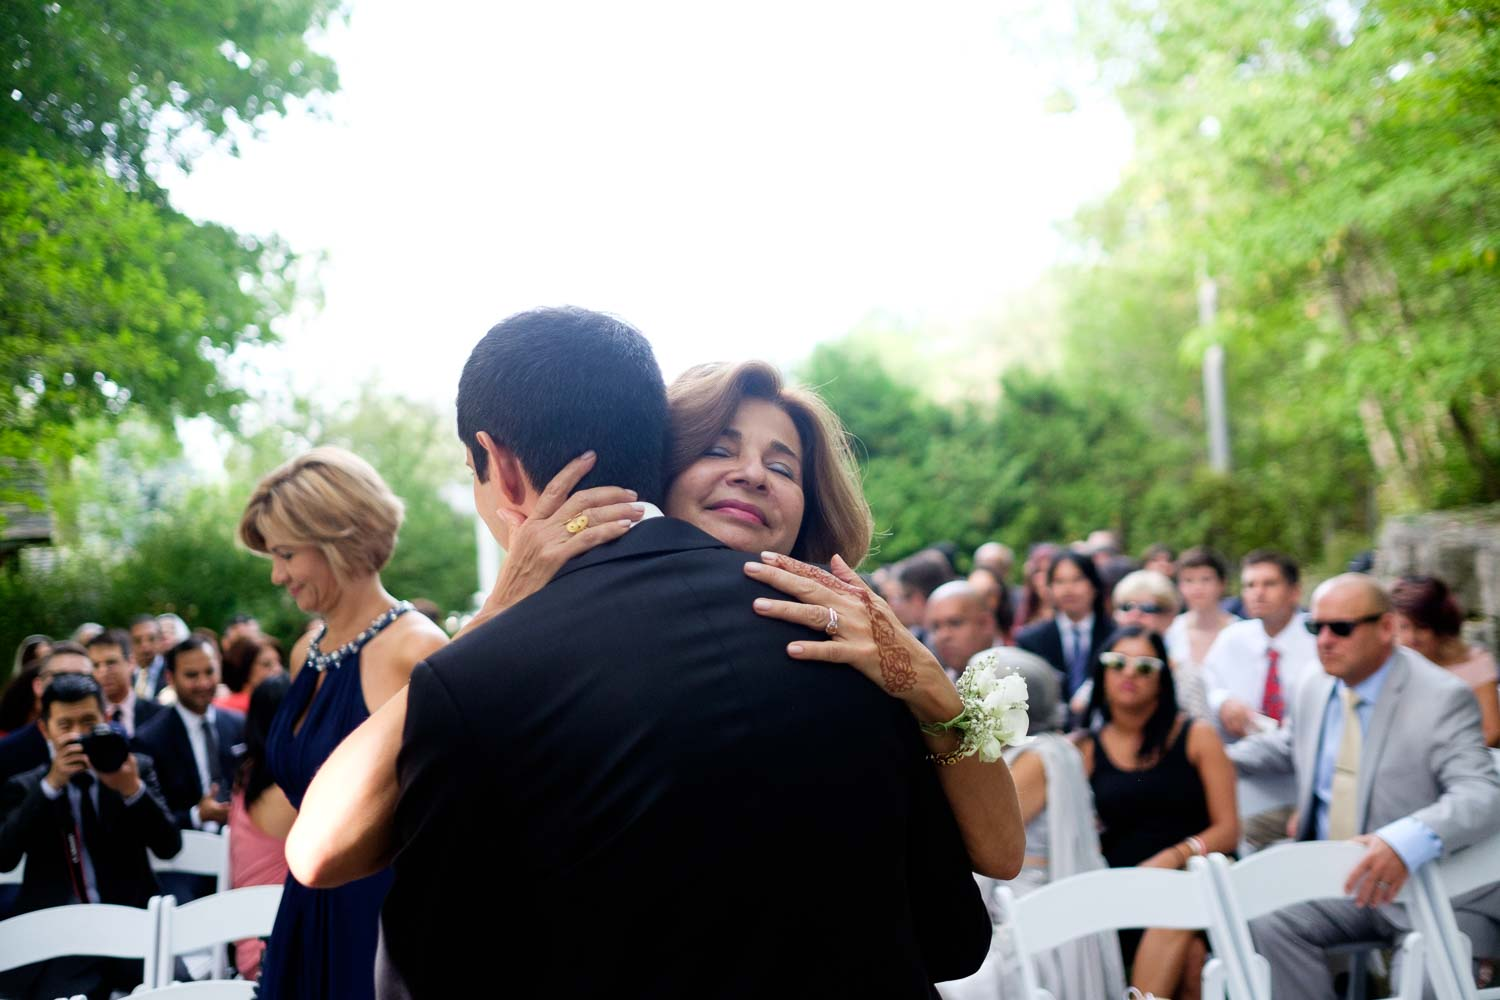 I'm a sucker for emotion in pictures so I live this one as Augusto's mom gives him one final hug before he marries Mashael during their outdoor wedding ceremony at Ancaster Mill.